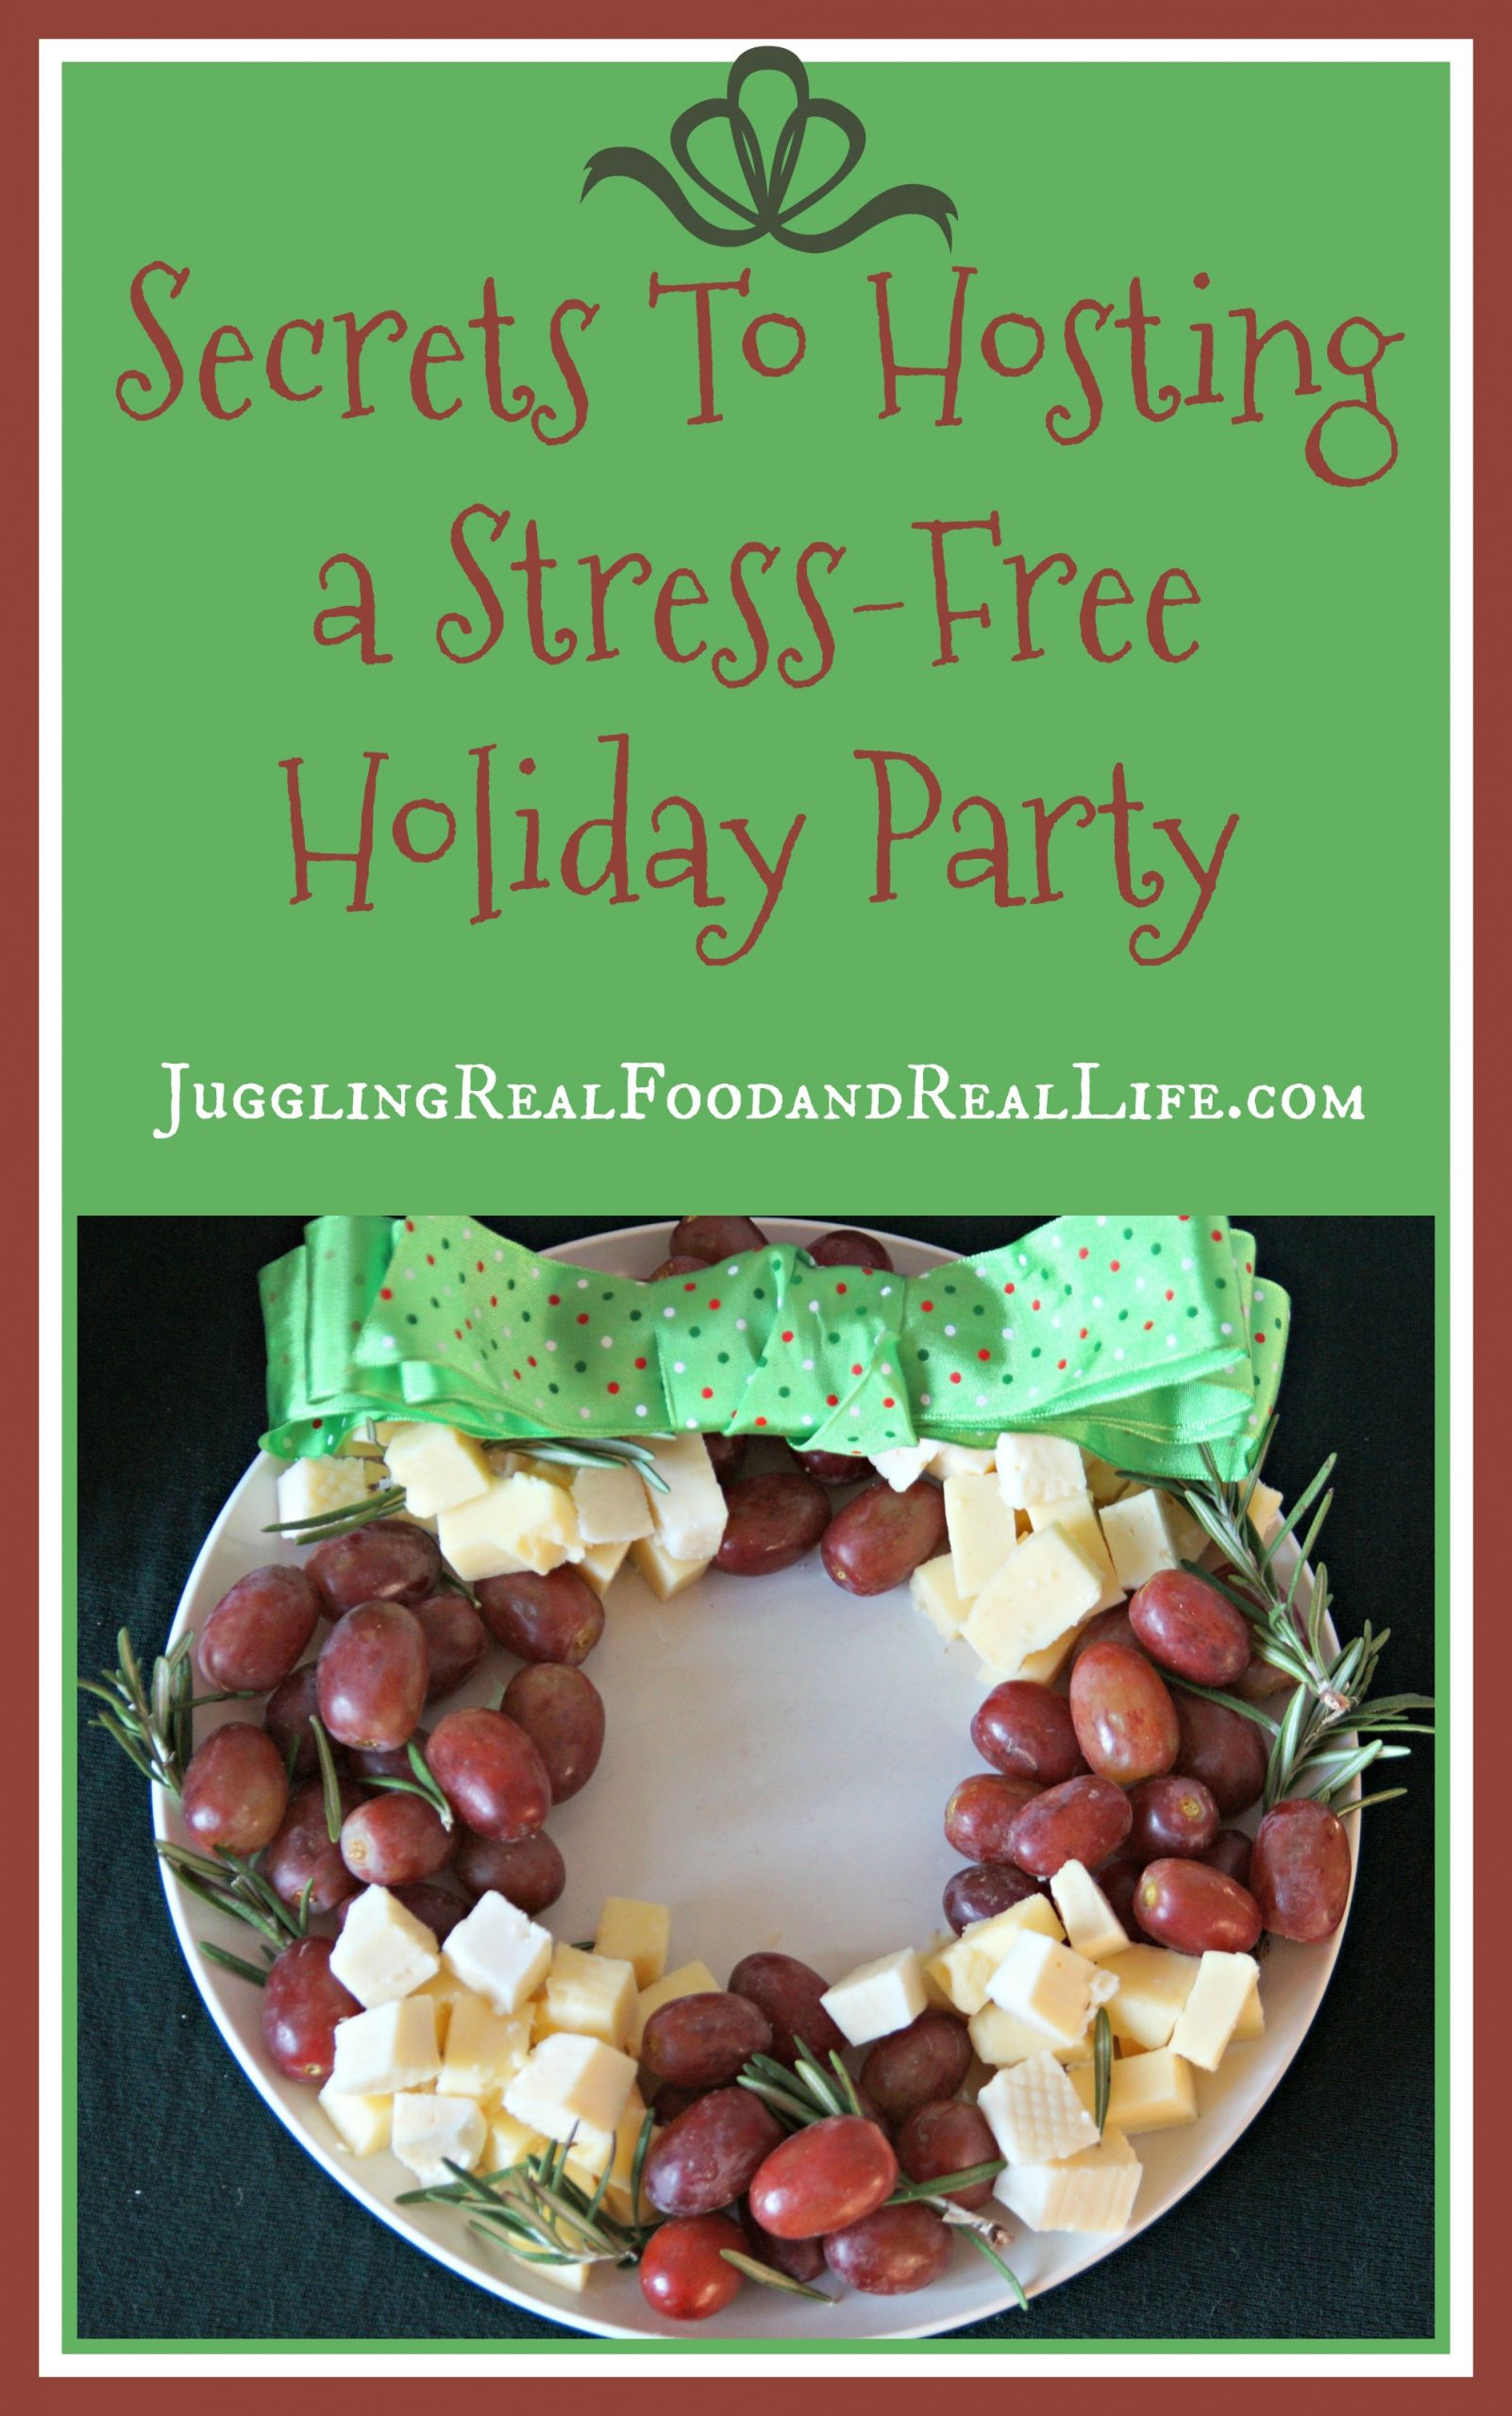 Secrets To Hosting A Stress-Free Holiday Party